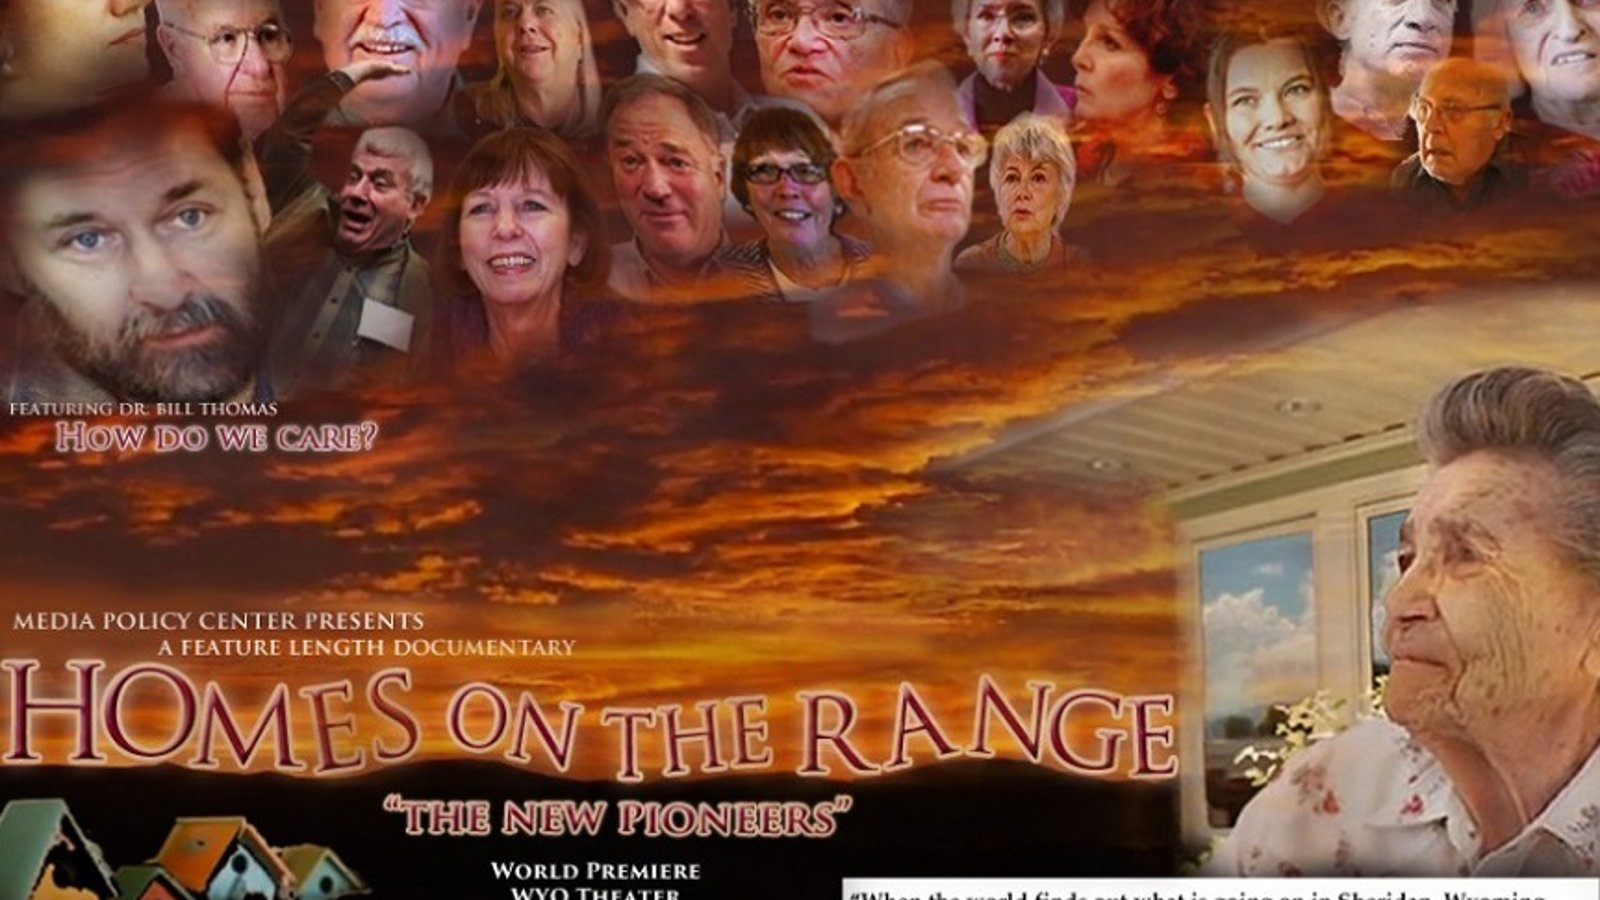 Homes on the Range: The New Pioneers